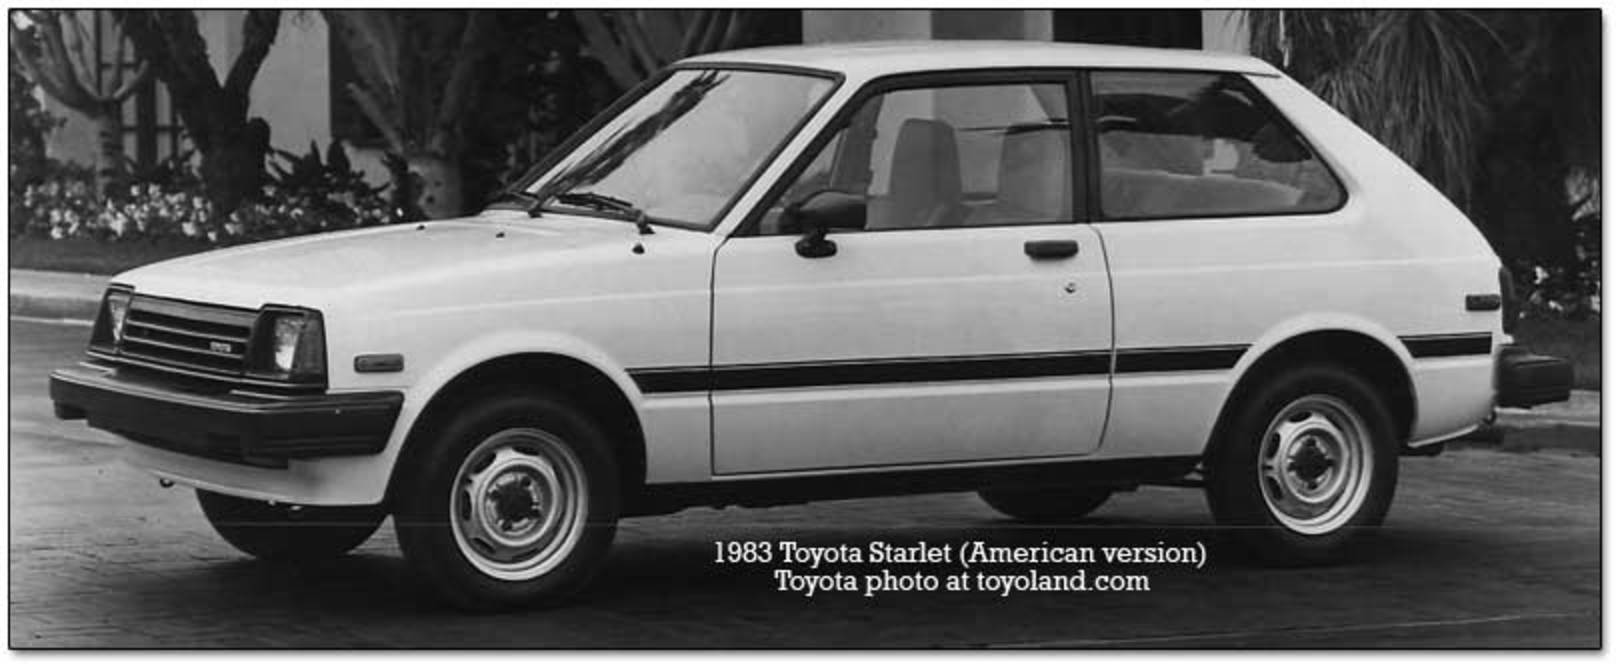 toyota starlet. In 1983, the American version of the Starlet increased its